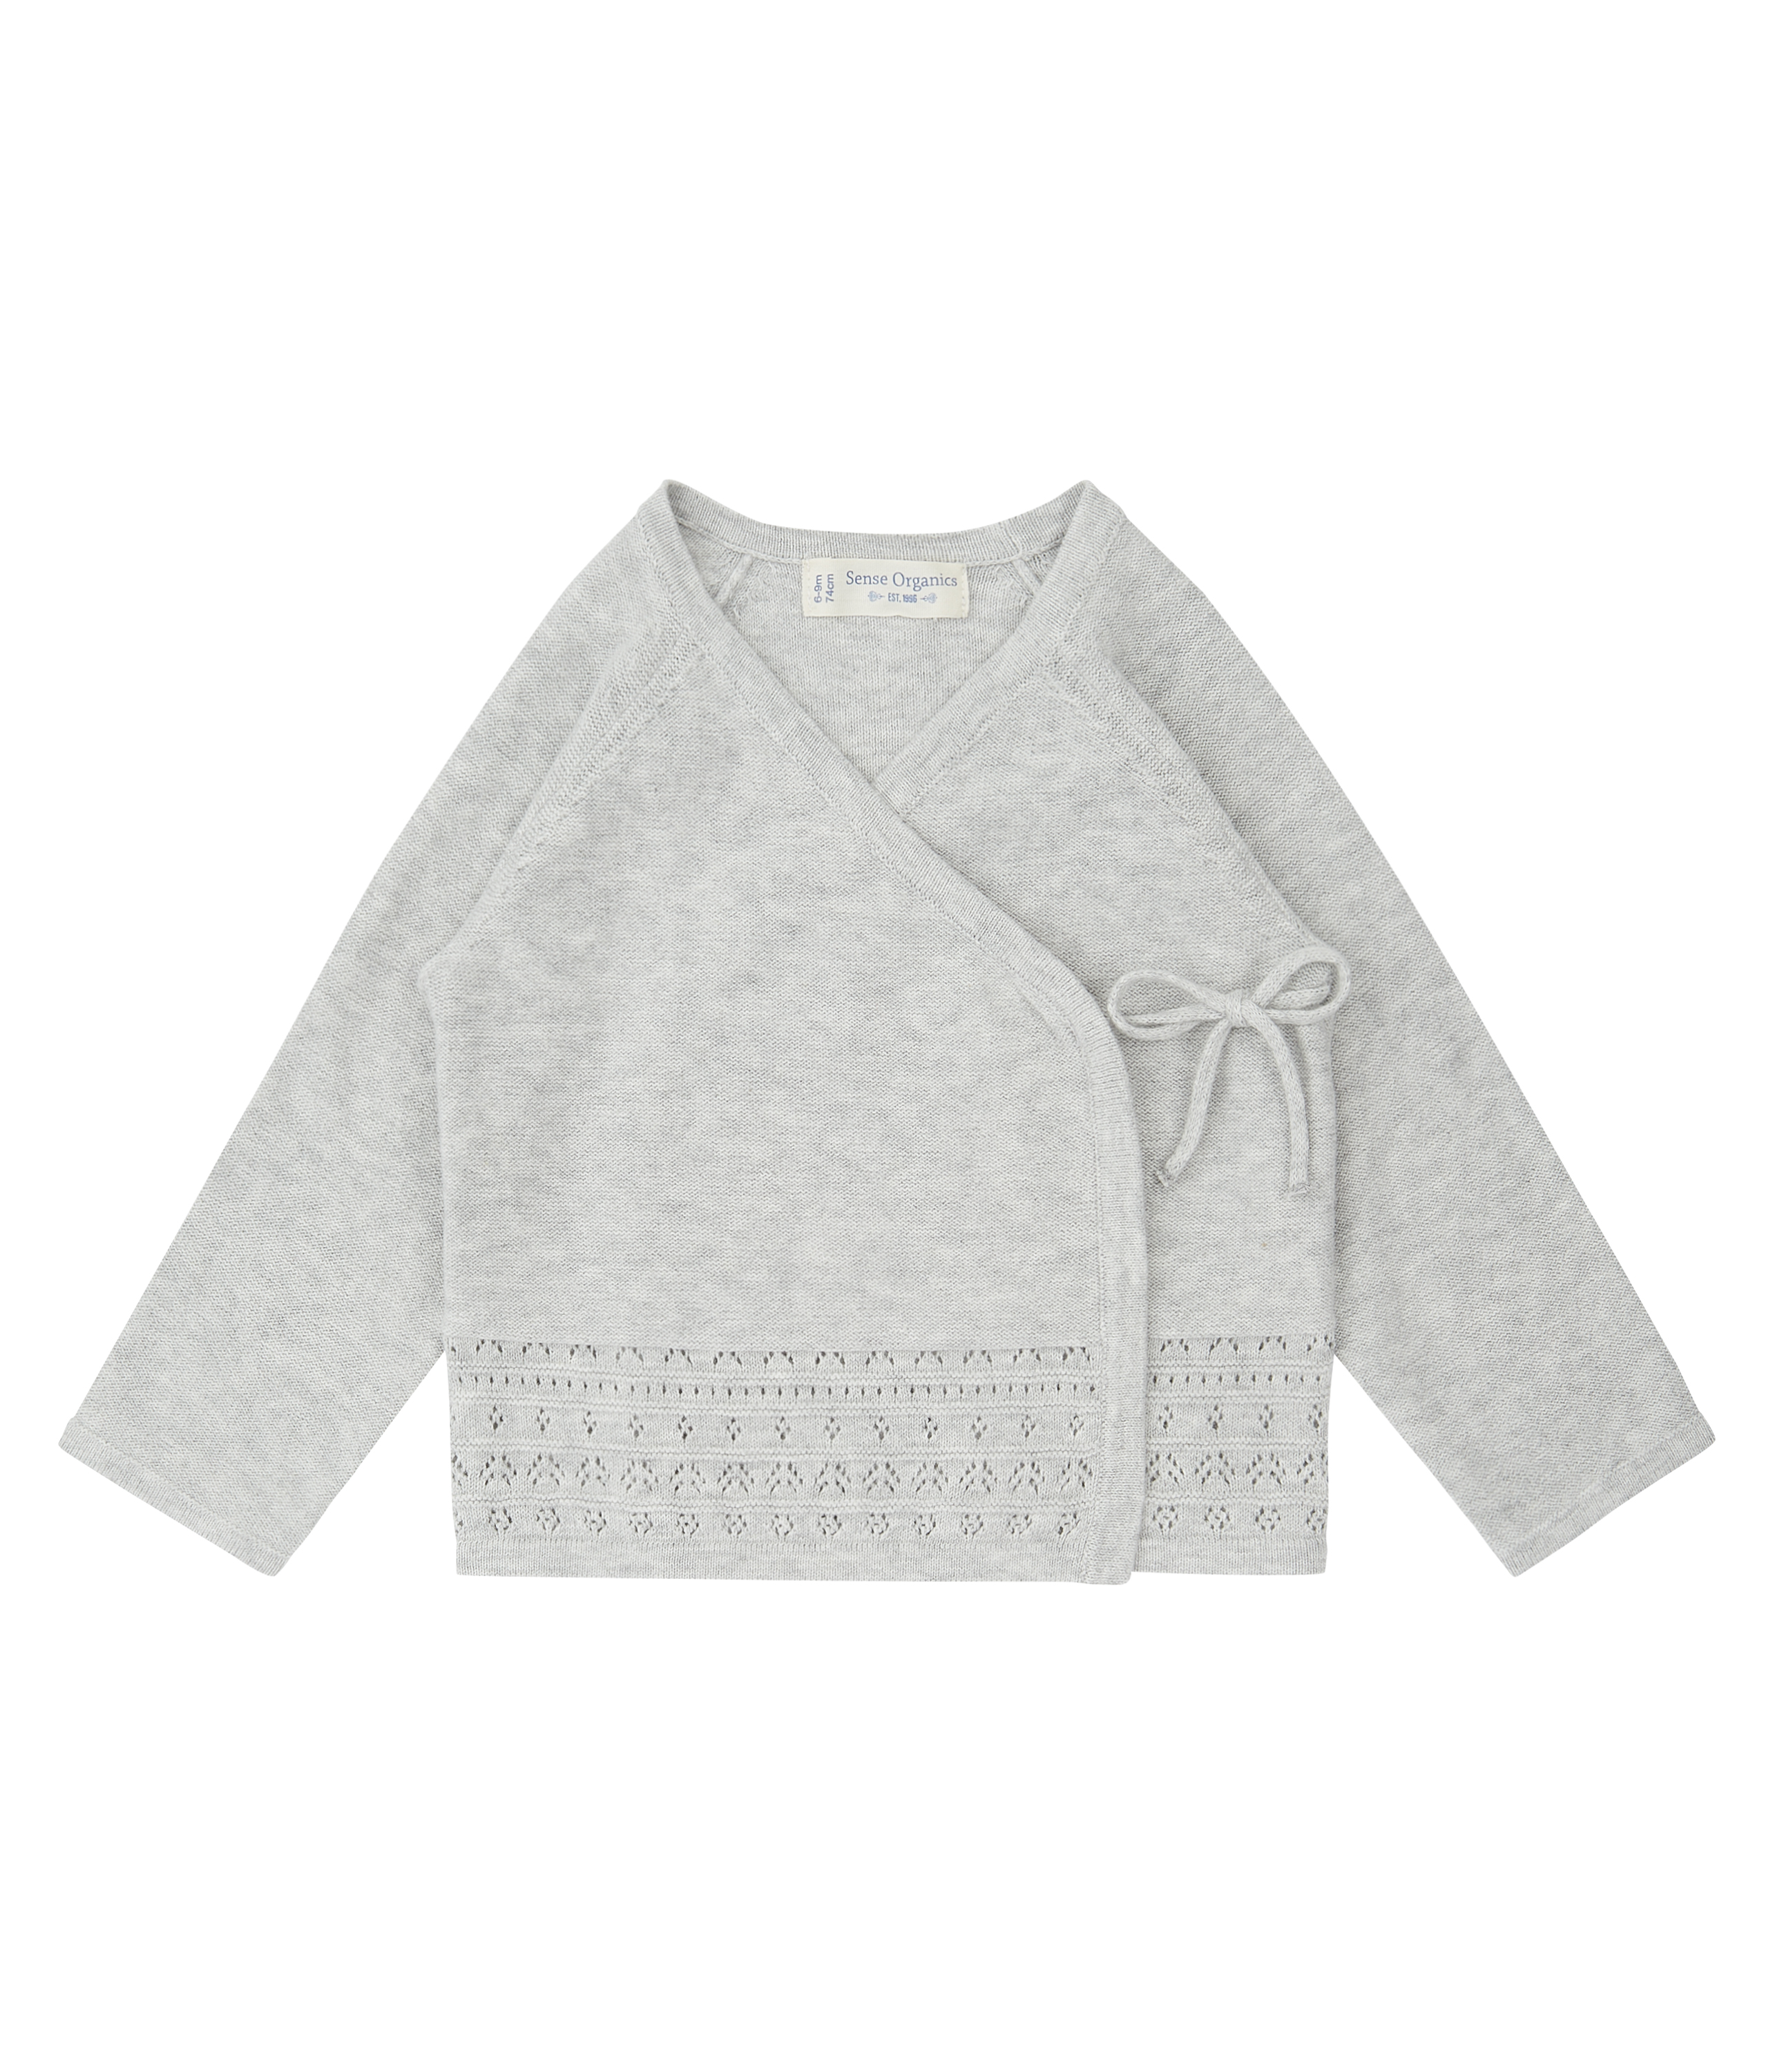 Sense Organic P. PICASSO Knitted Baby Wrap Jacket Light Grey